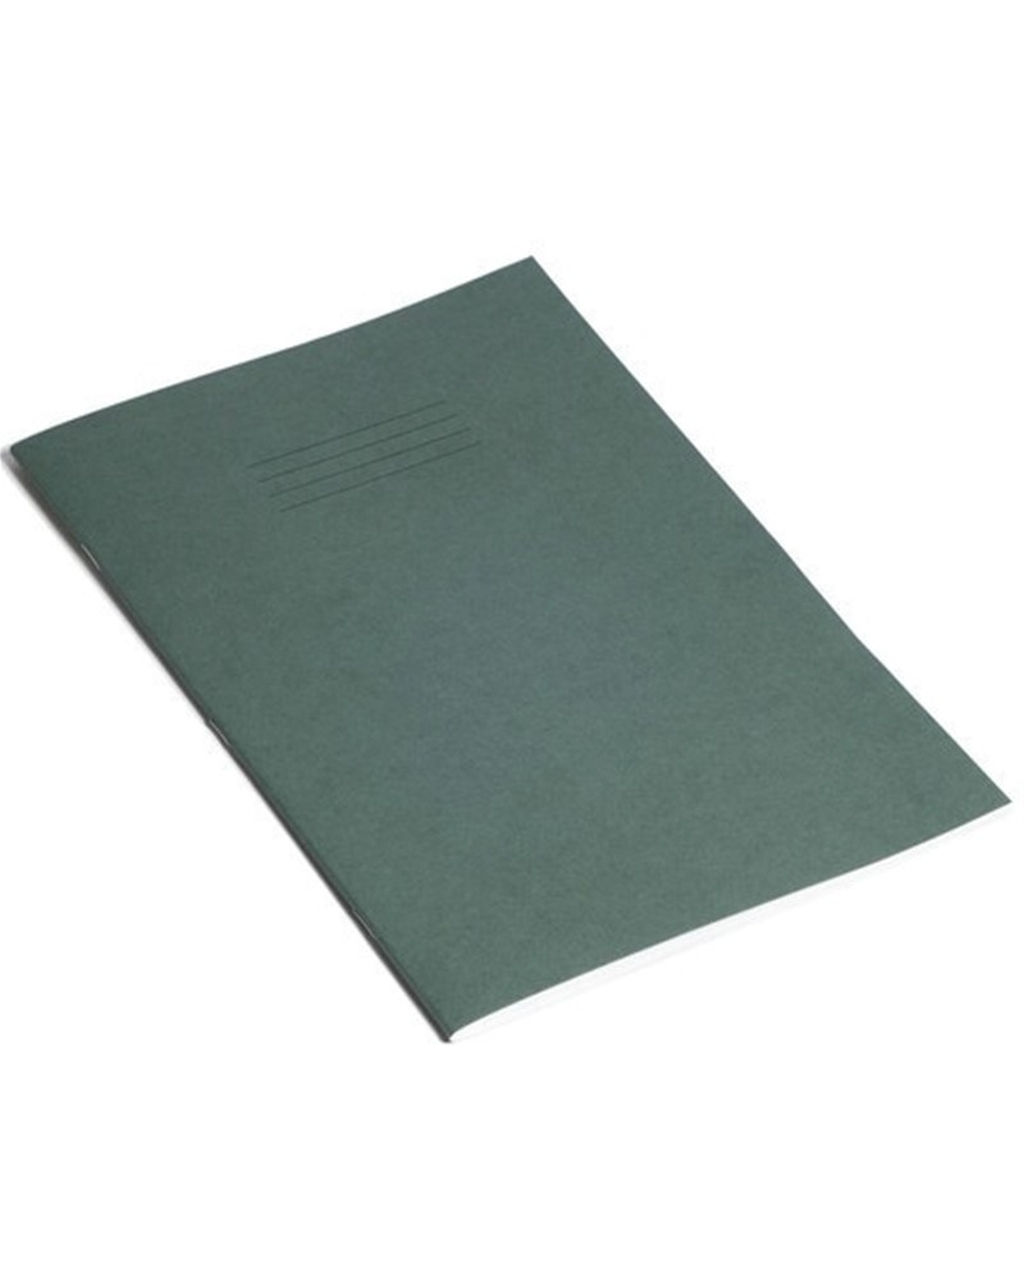 Exercise Book A4 (297 x 210mm) Dark Green Cover 8mm Ruled / Plain Alternate Pages 80 Pages